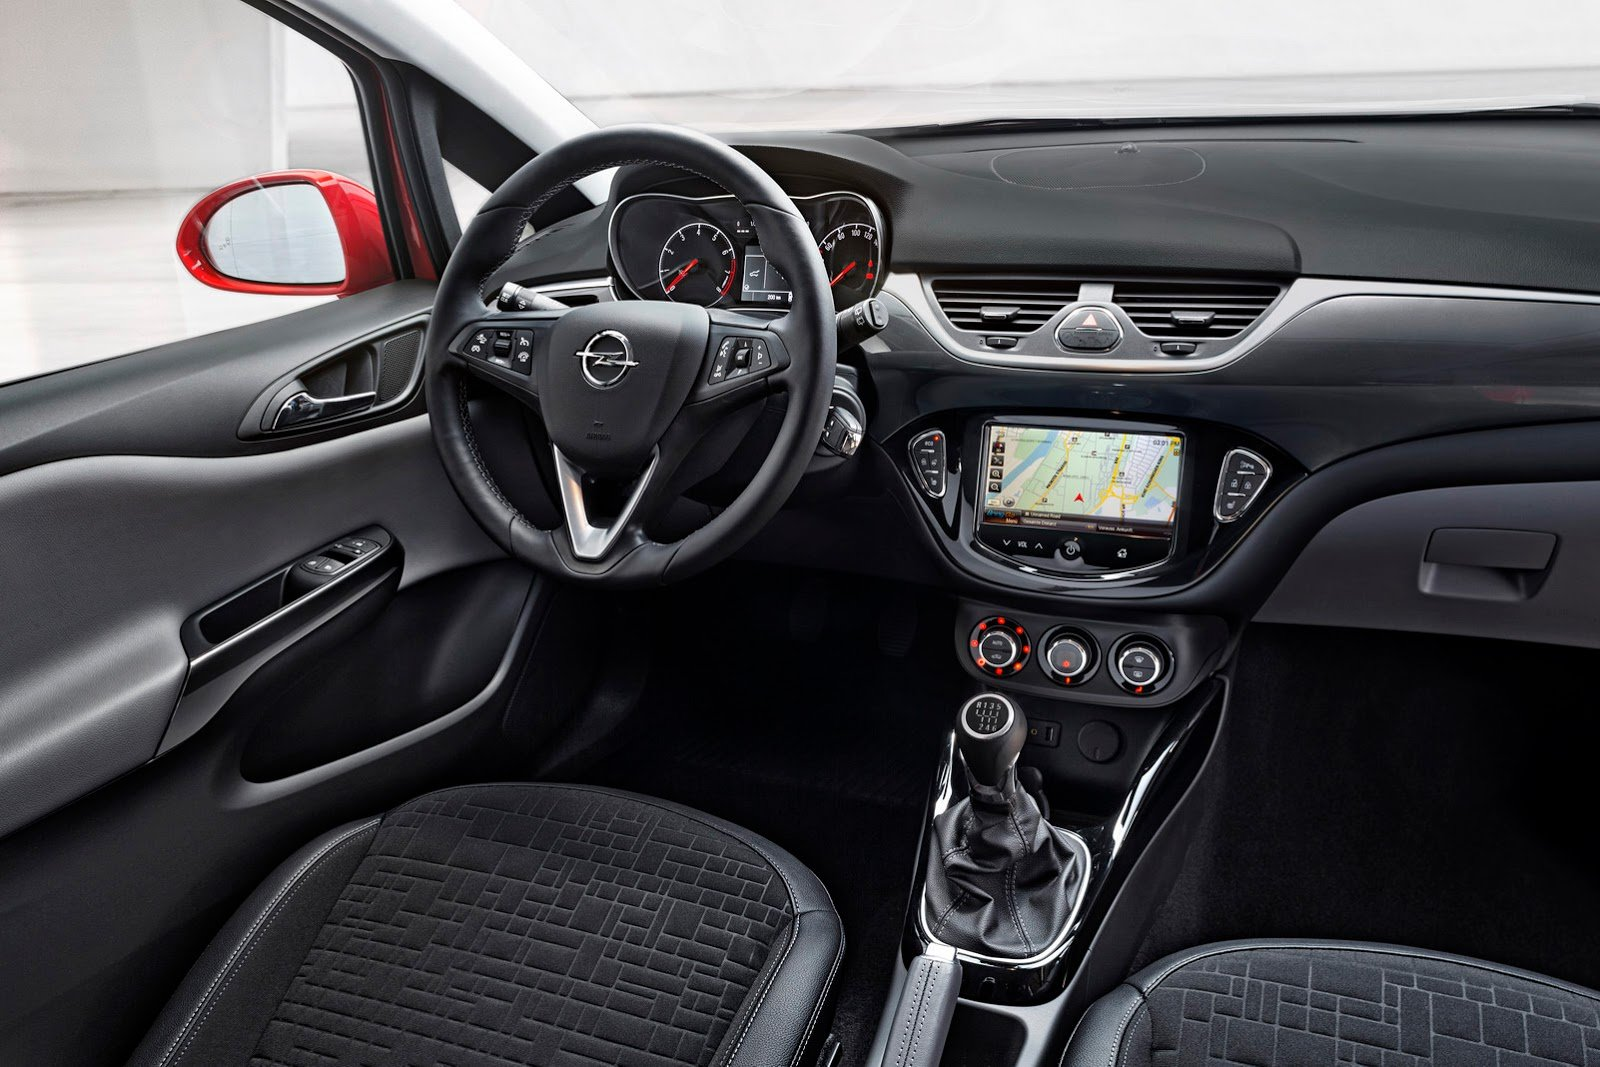 New Opel Corsa 2018 >> 2014 opel corsa red germany cars interior wallpaper | 1600x1067 | 392125 | WallpaperUP